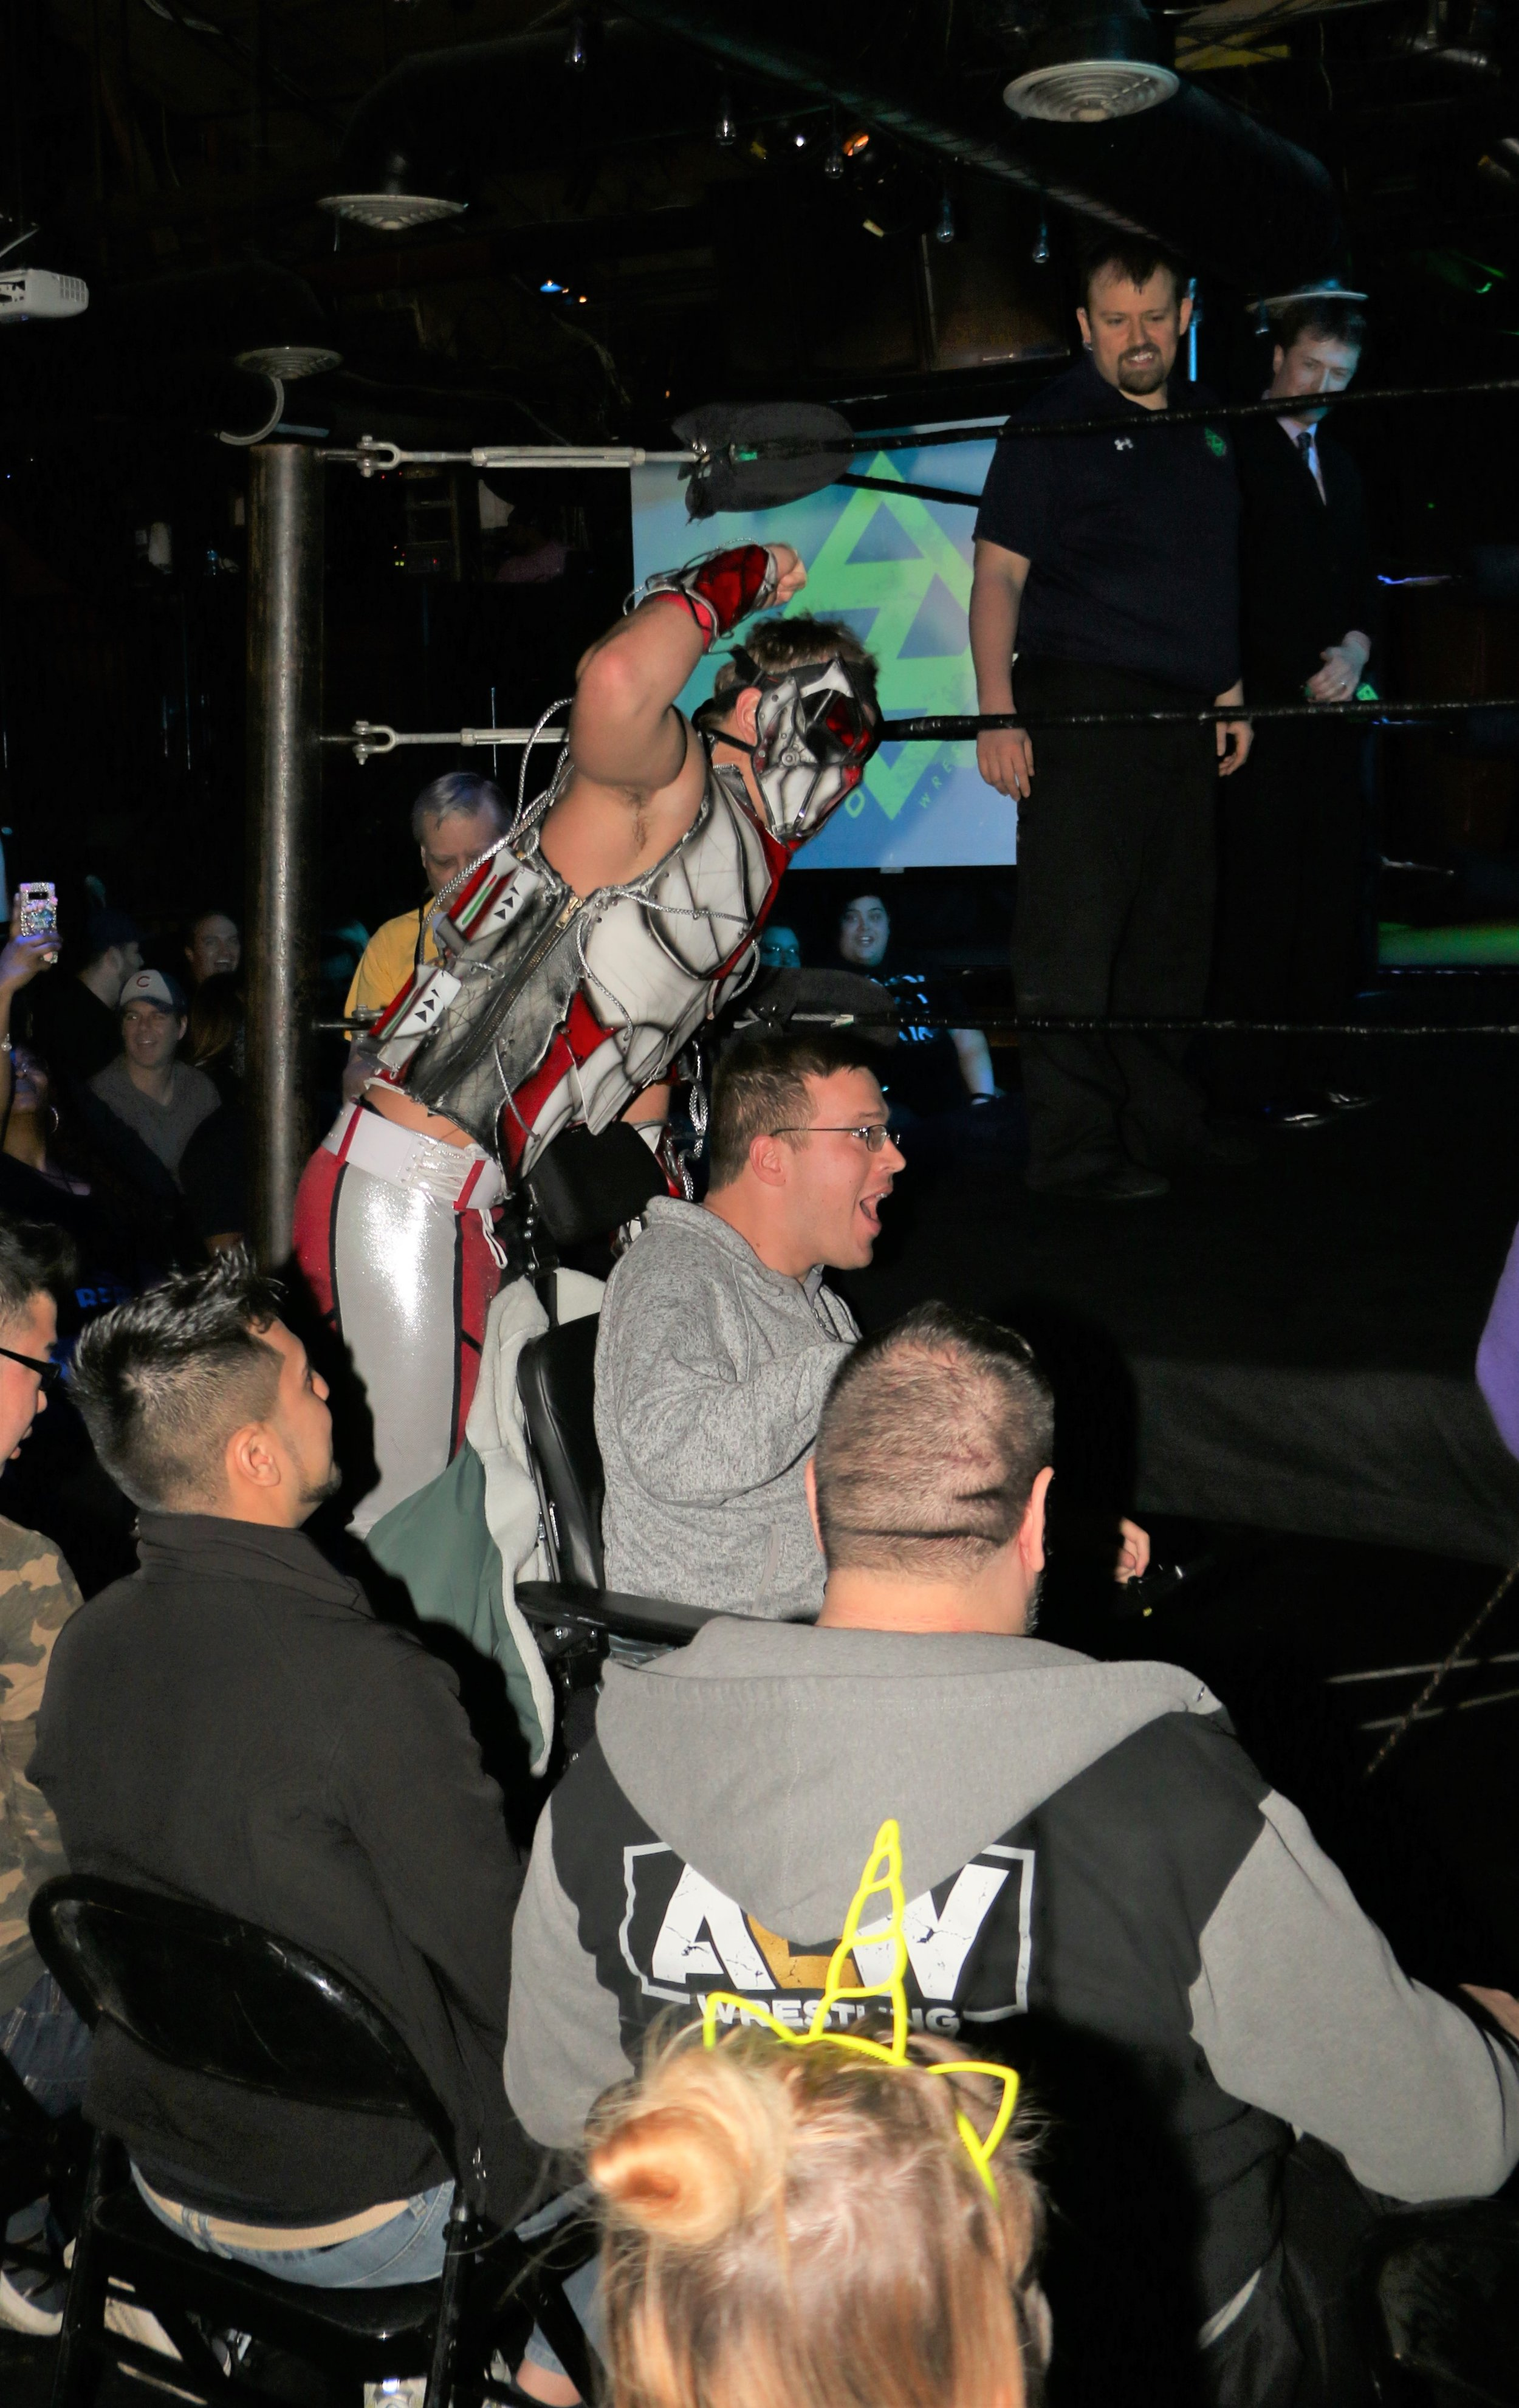 Pat Monix takes a ride on the back on a fan's wheelchair at ringside.